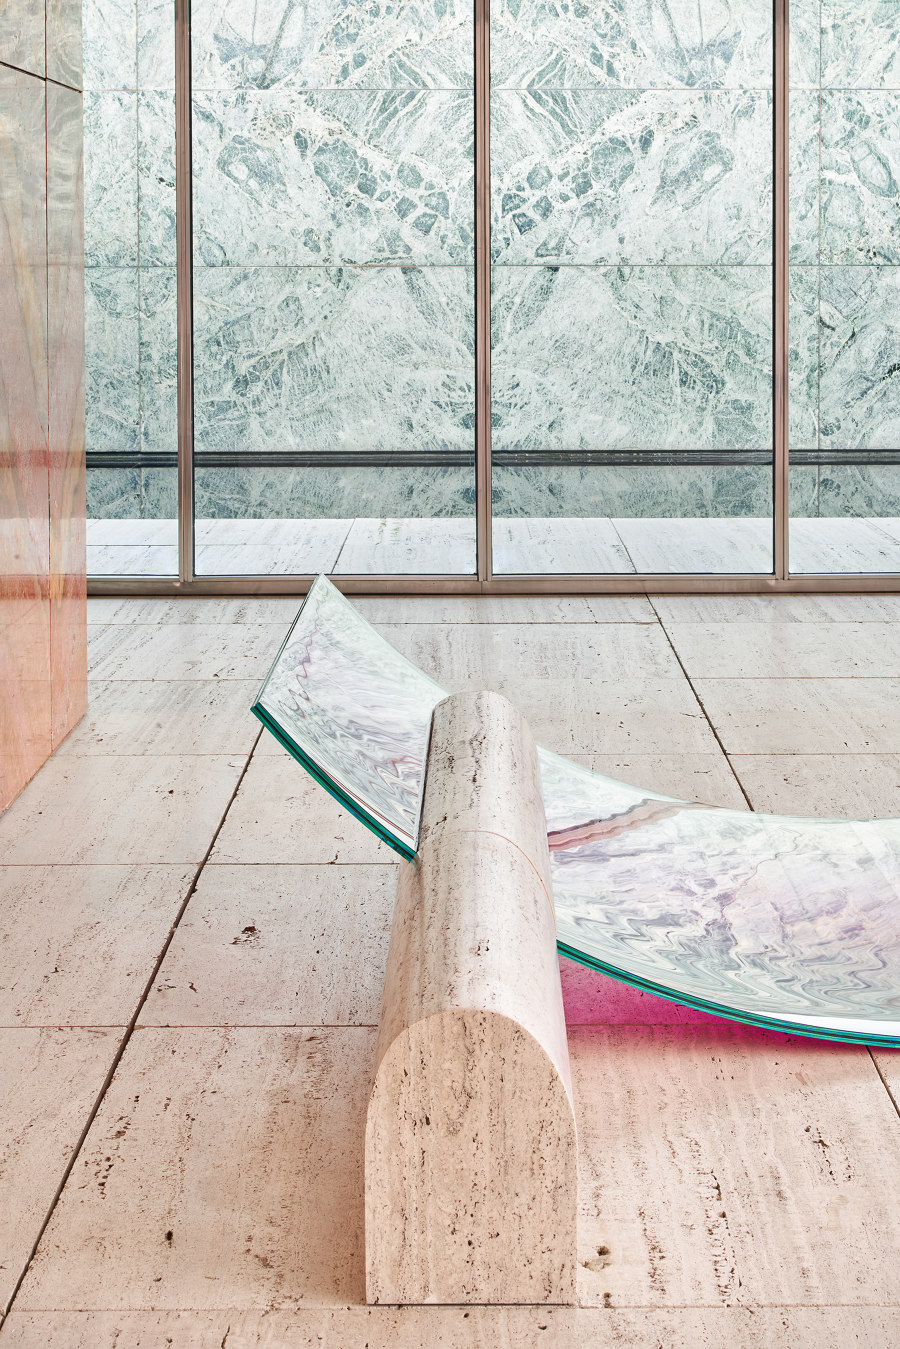 No Fear of Glass von Sabine Marcelis | Installationen